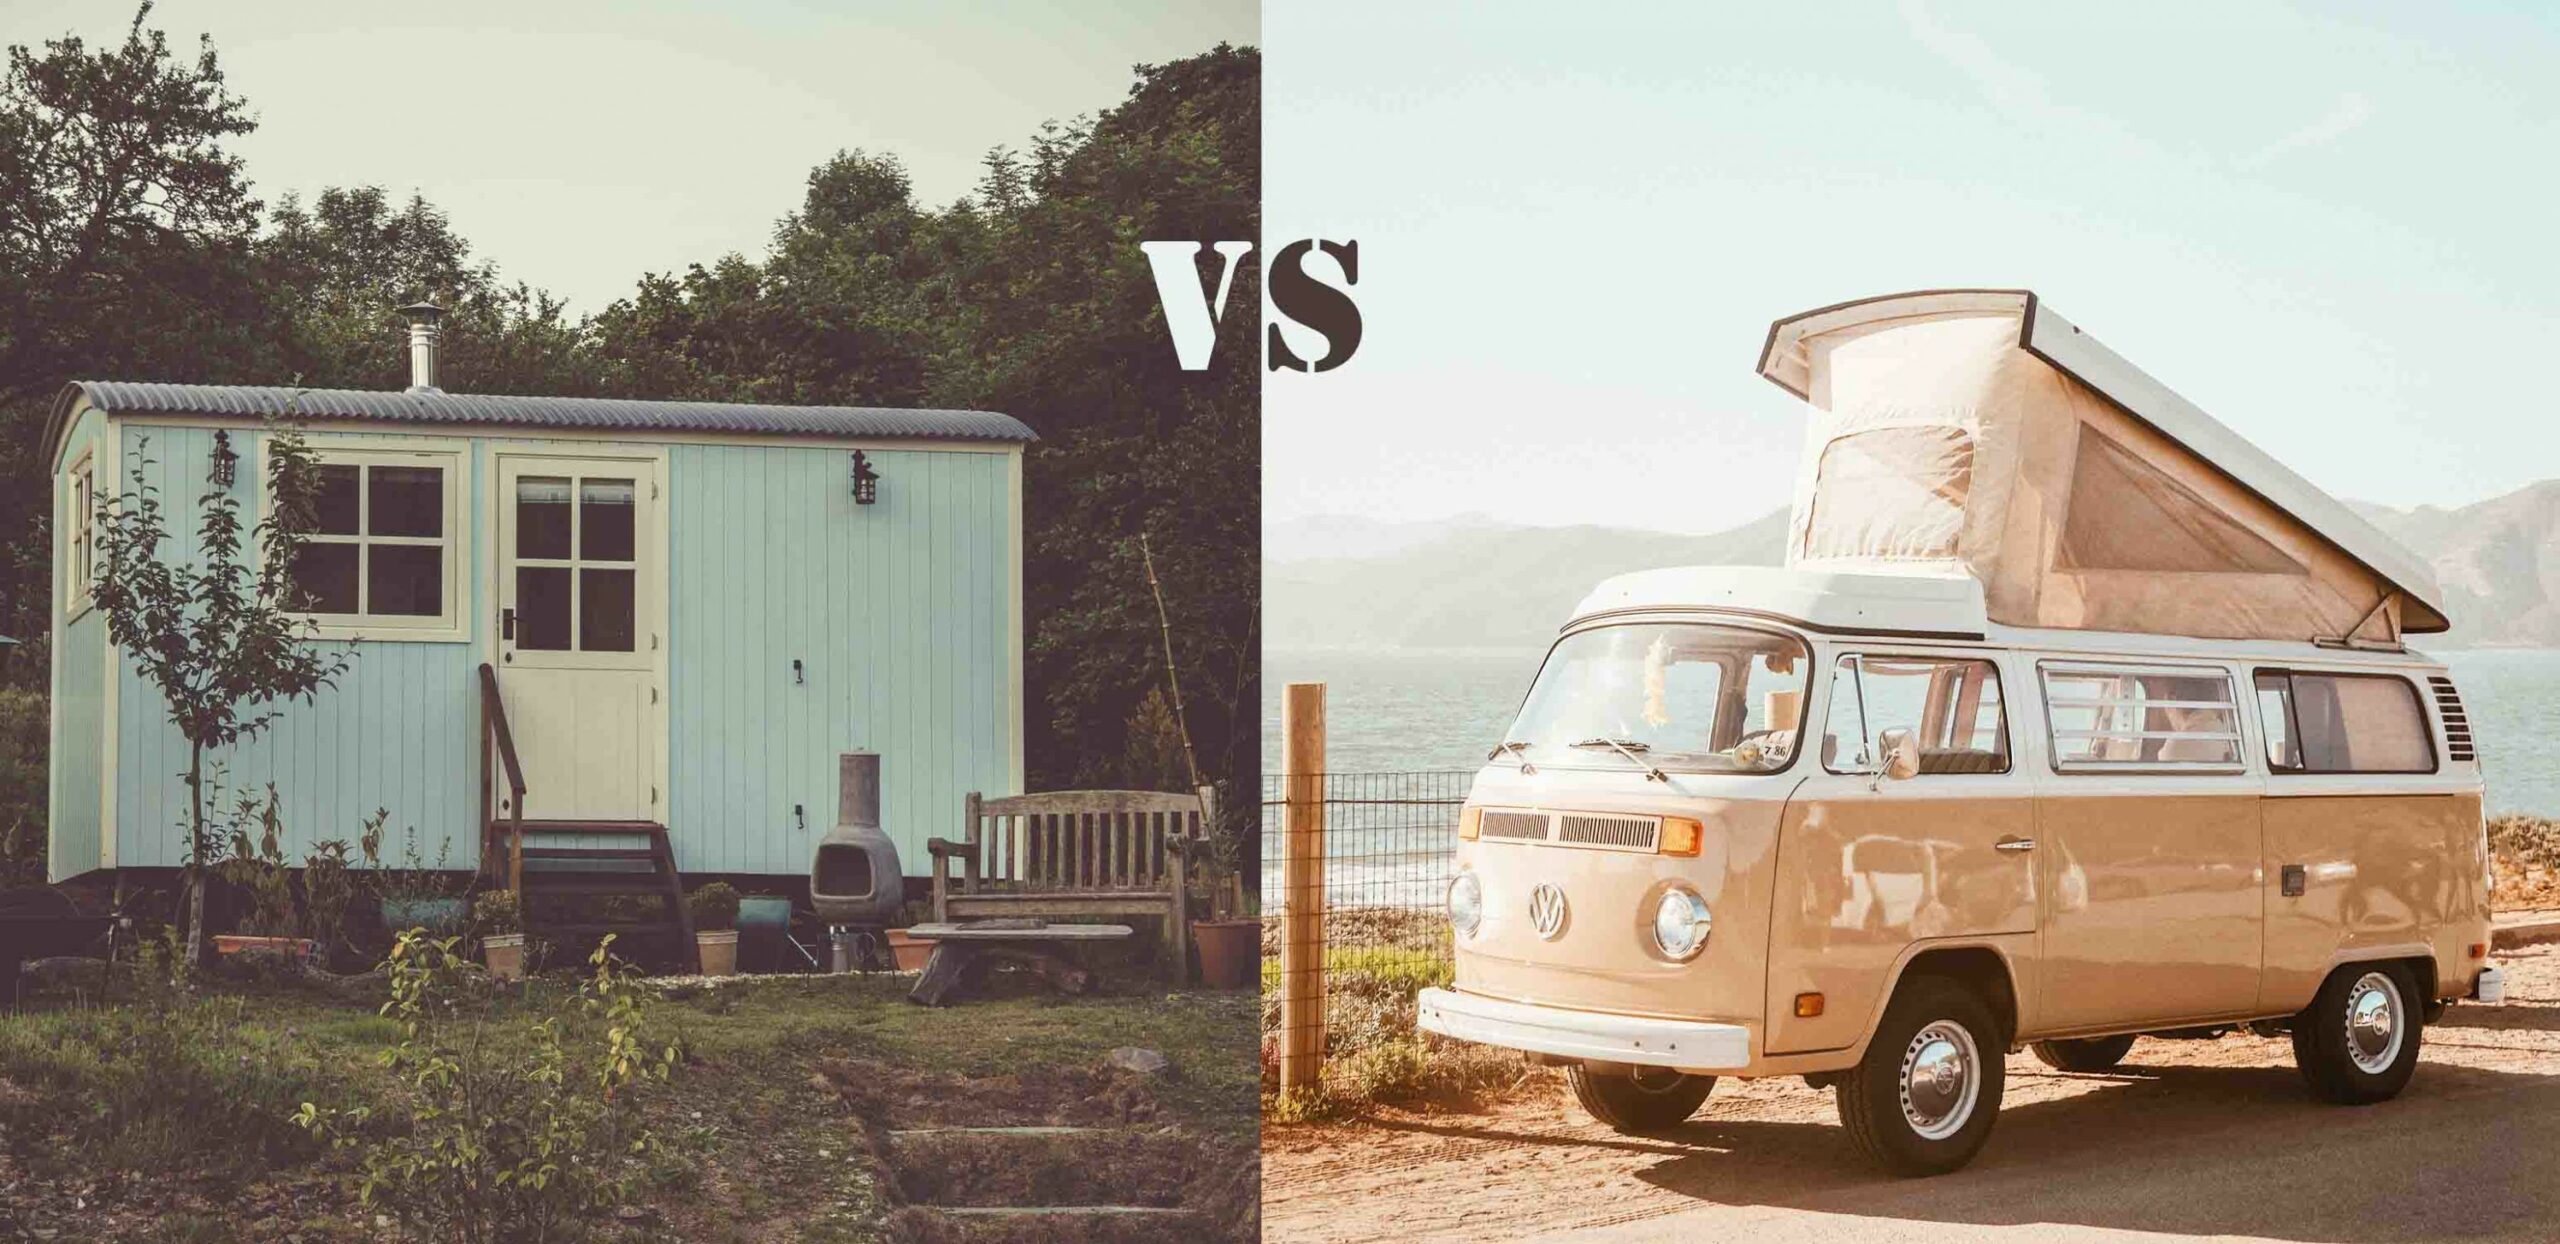 Tiny House vs RV - When you need a home away from home - tiny house vs rv